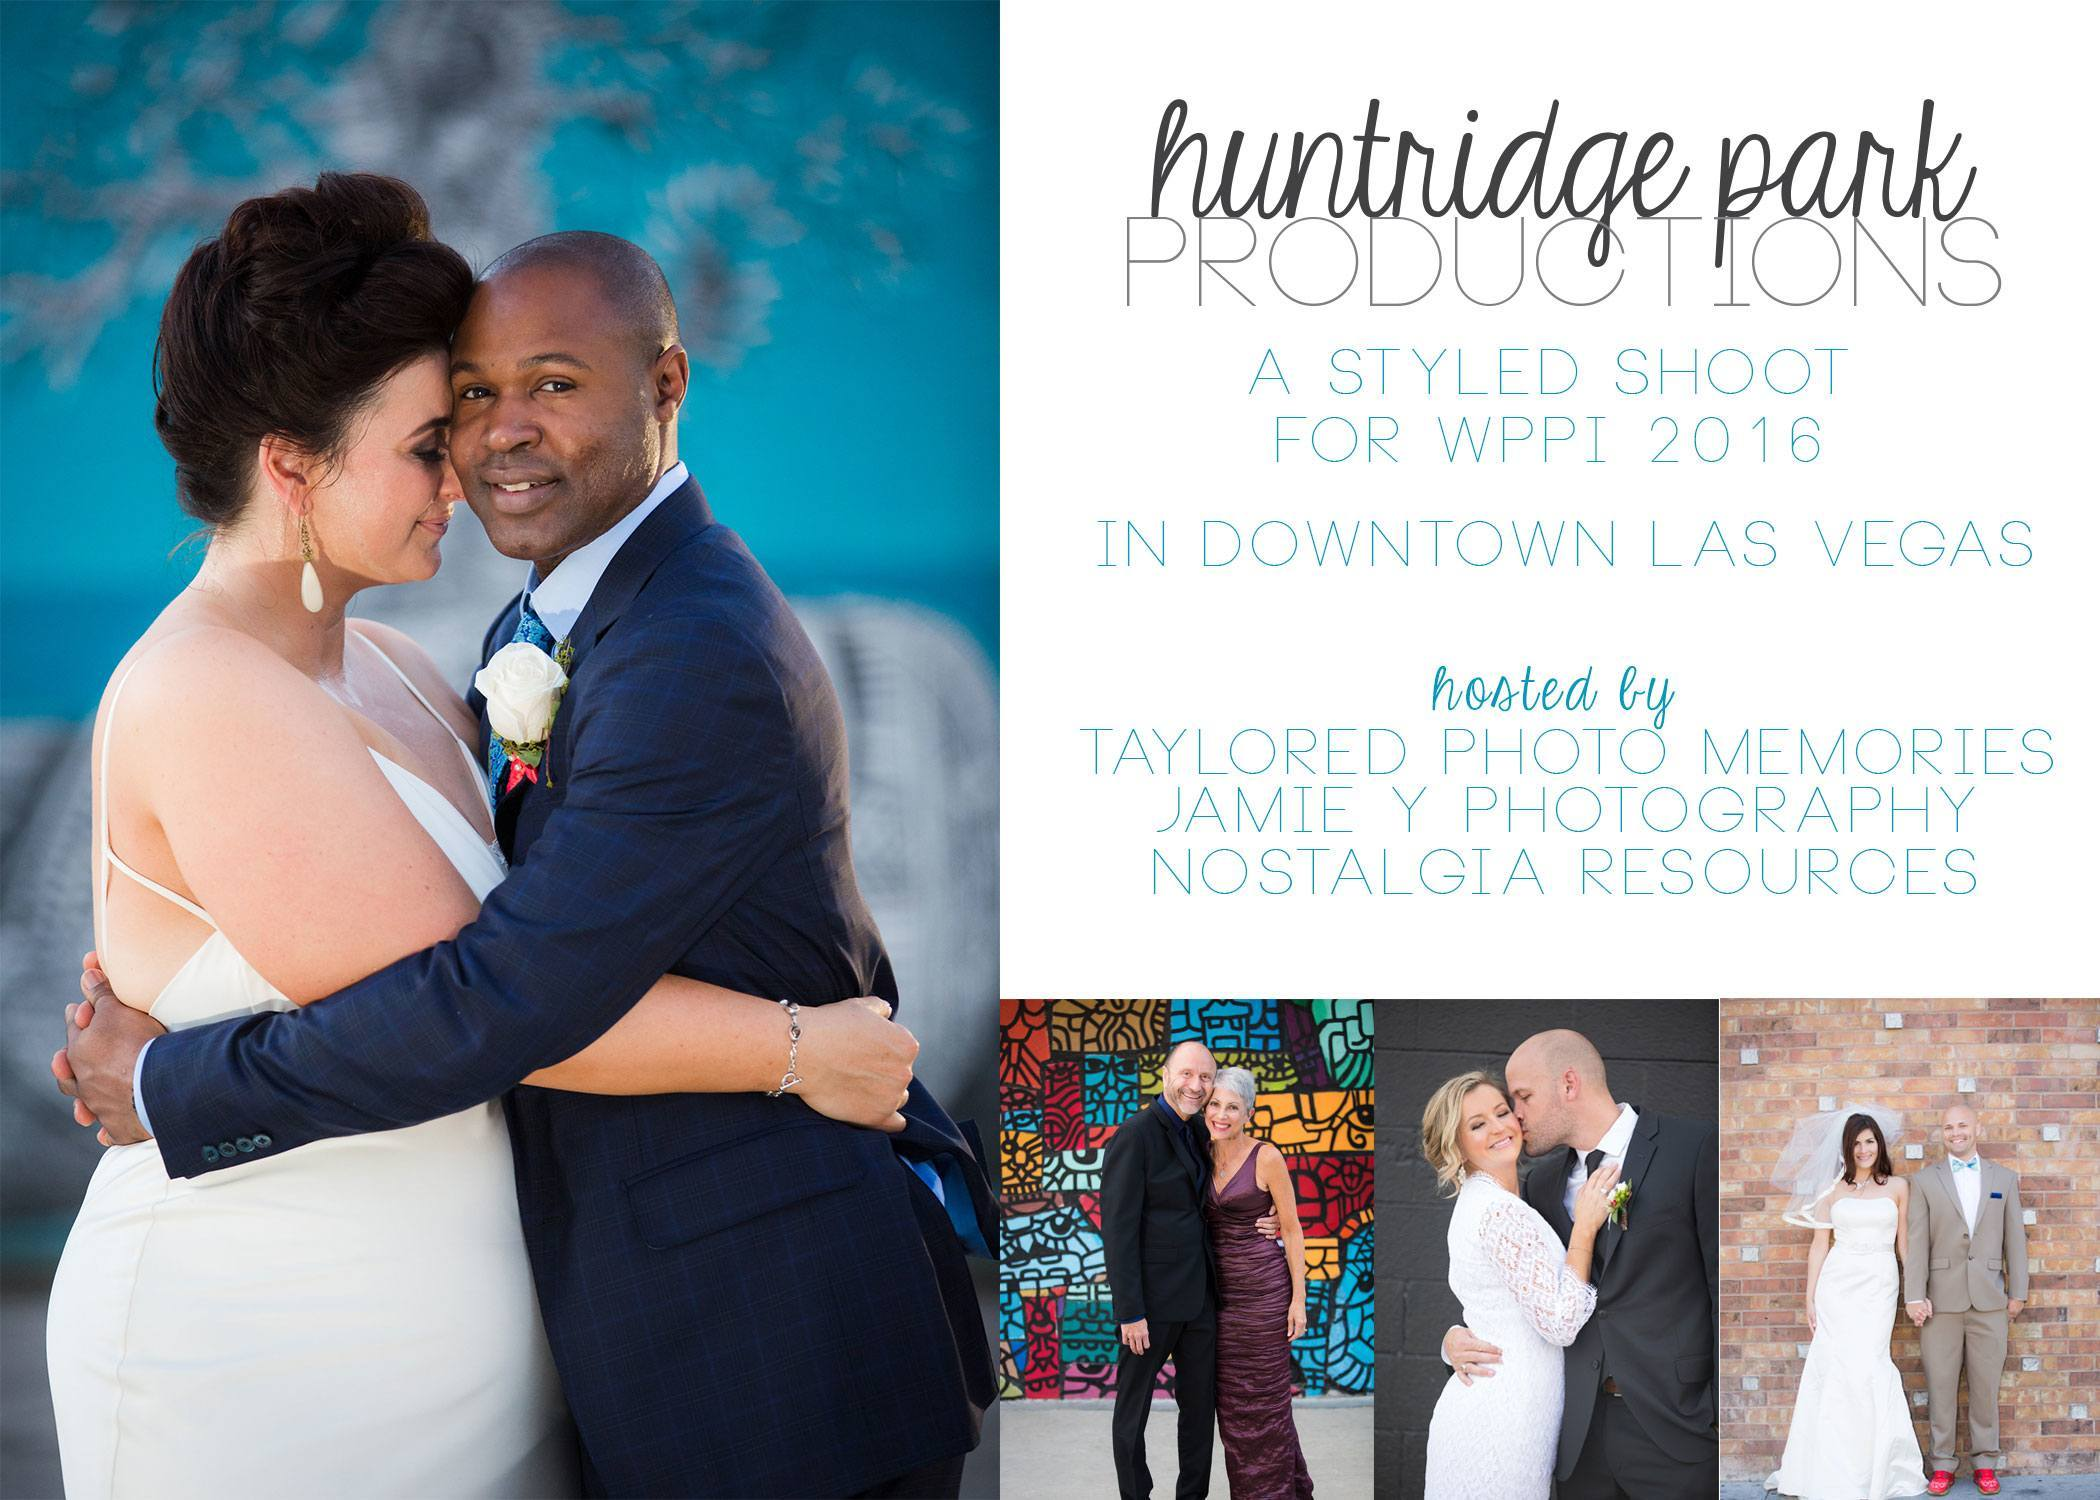 WPPI 2016 Styled Shoot in Las Vegas by Las Vegas Wedding Photographers Jamie Y photography and taylored photo memories